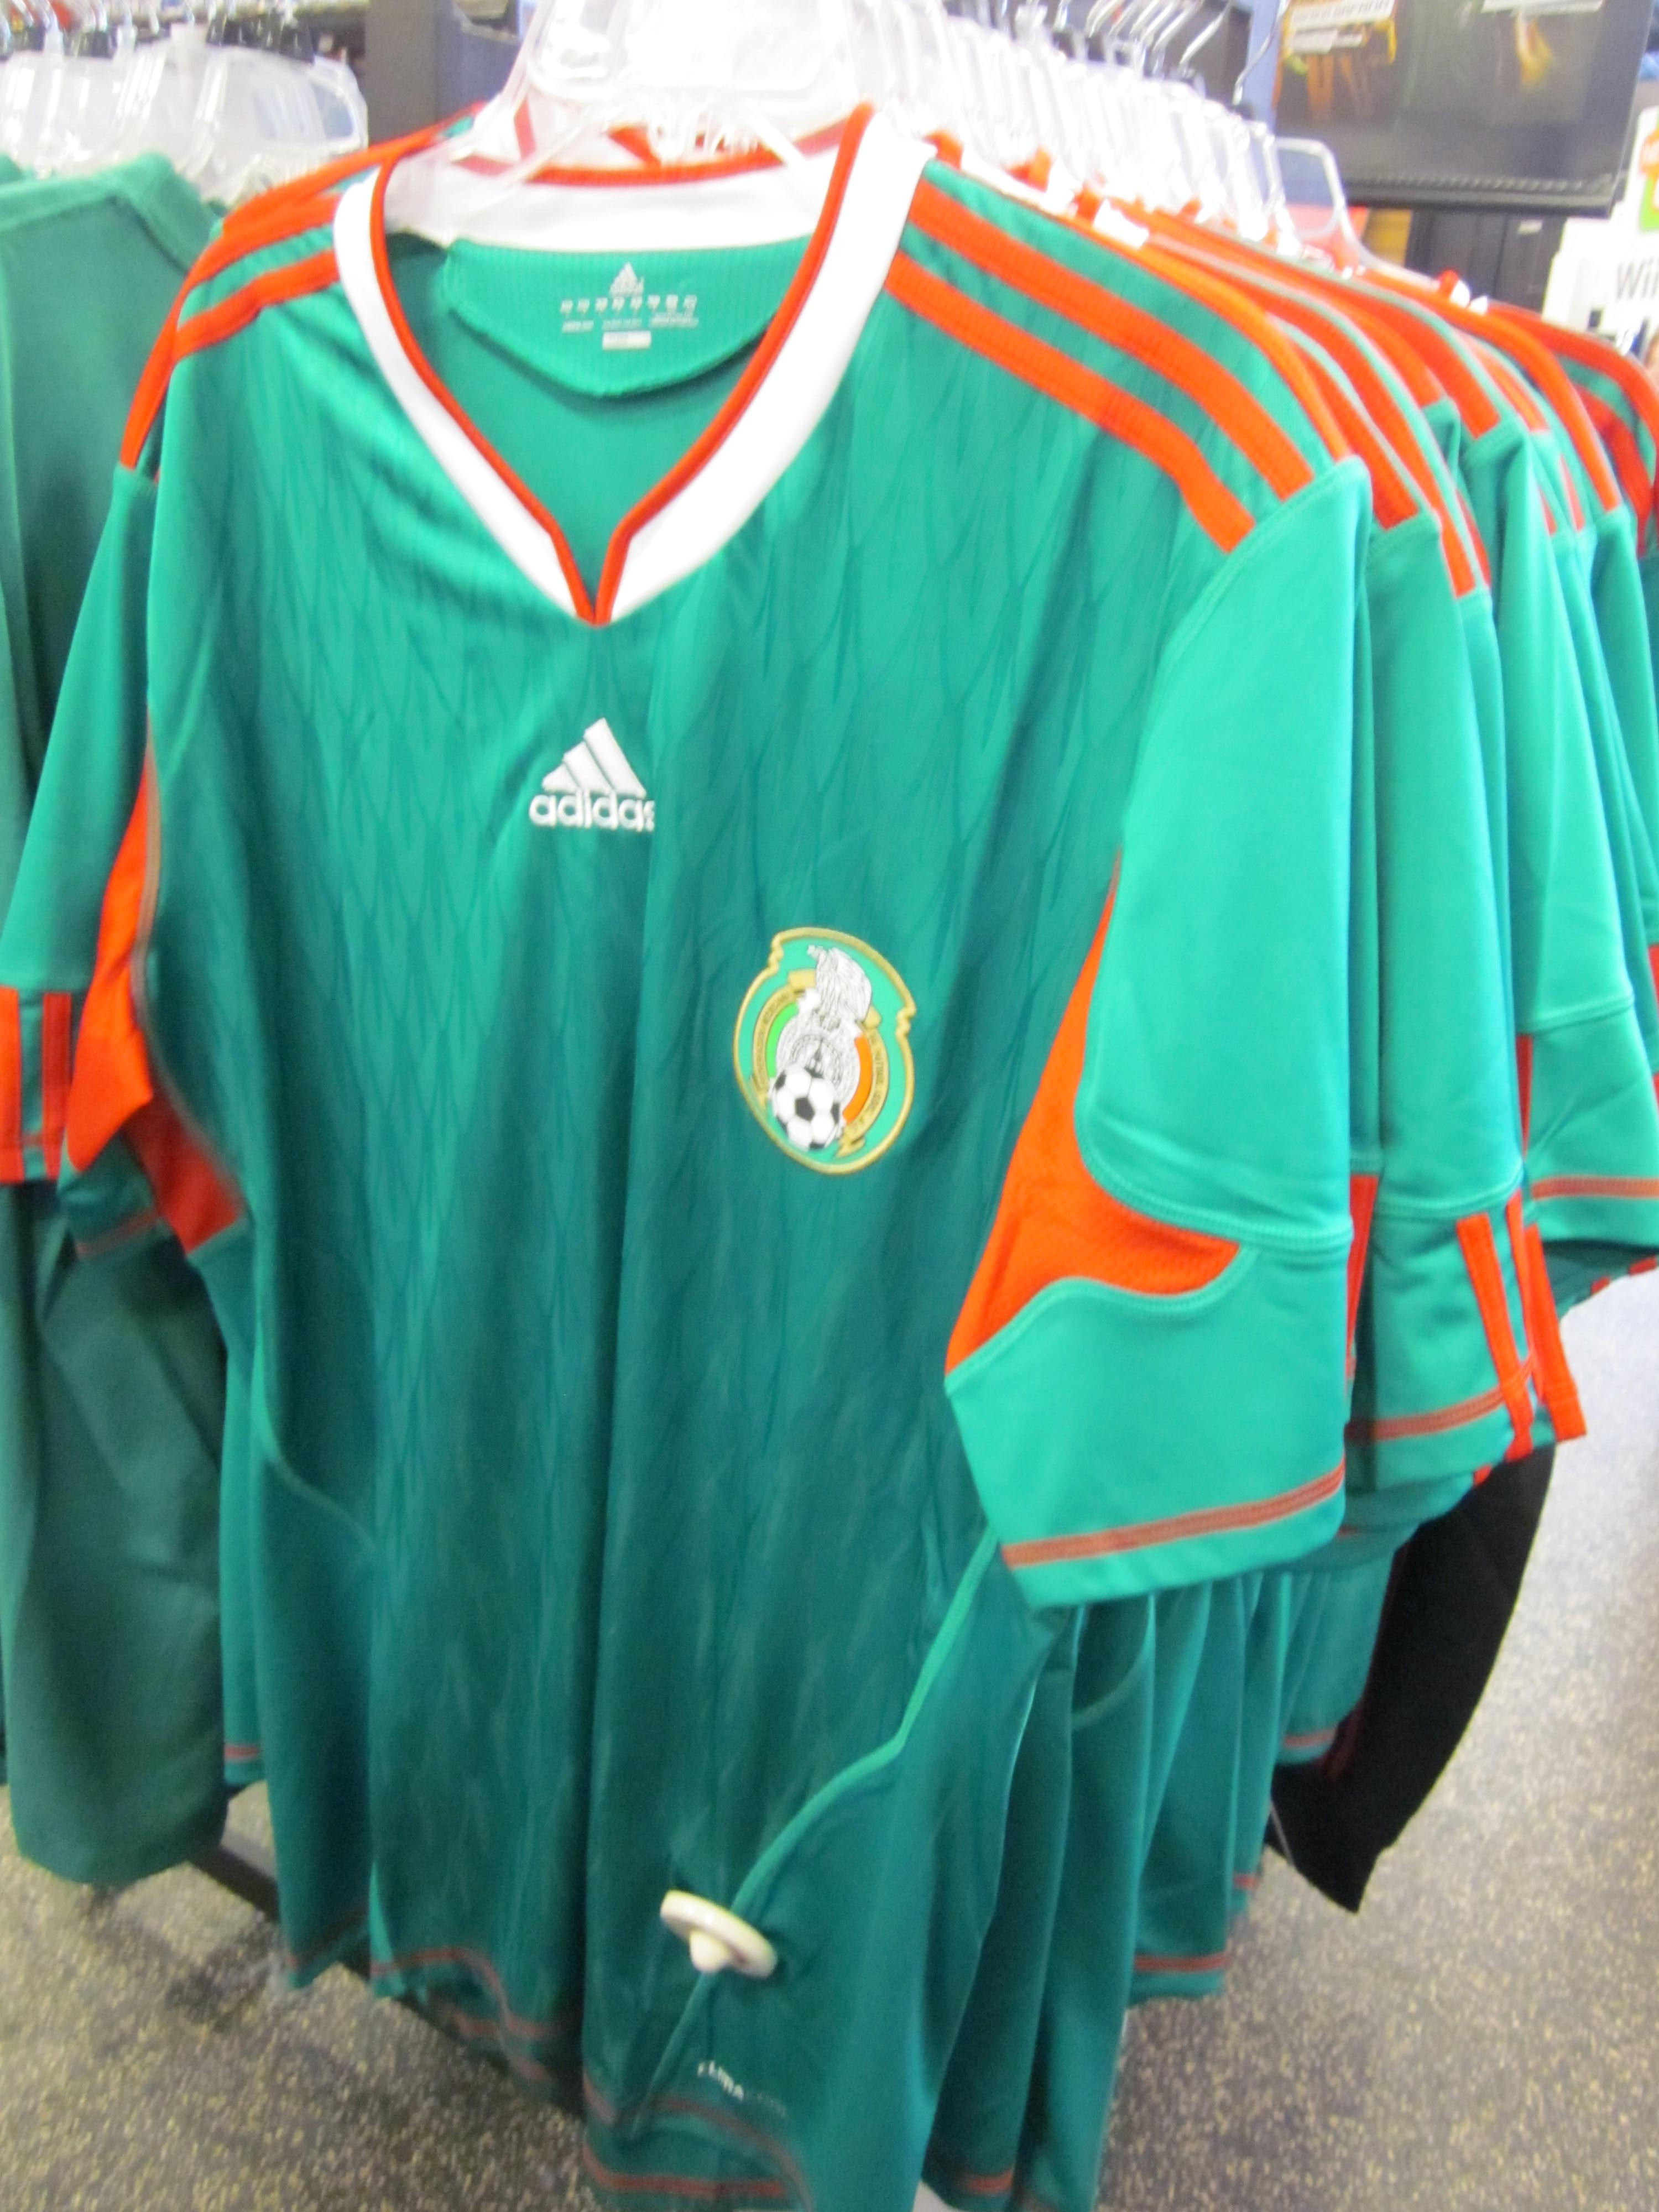 separation shoes 0d896 0c5bb File:Adidas Mexico national football team home jersey.JPG ...